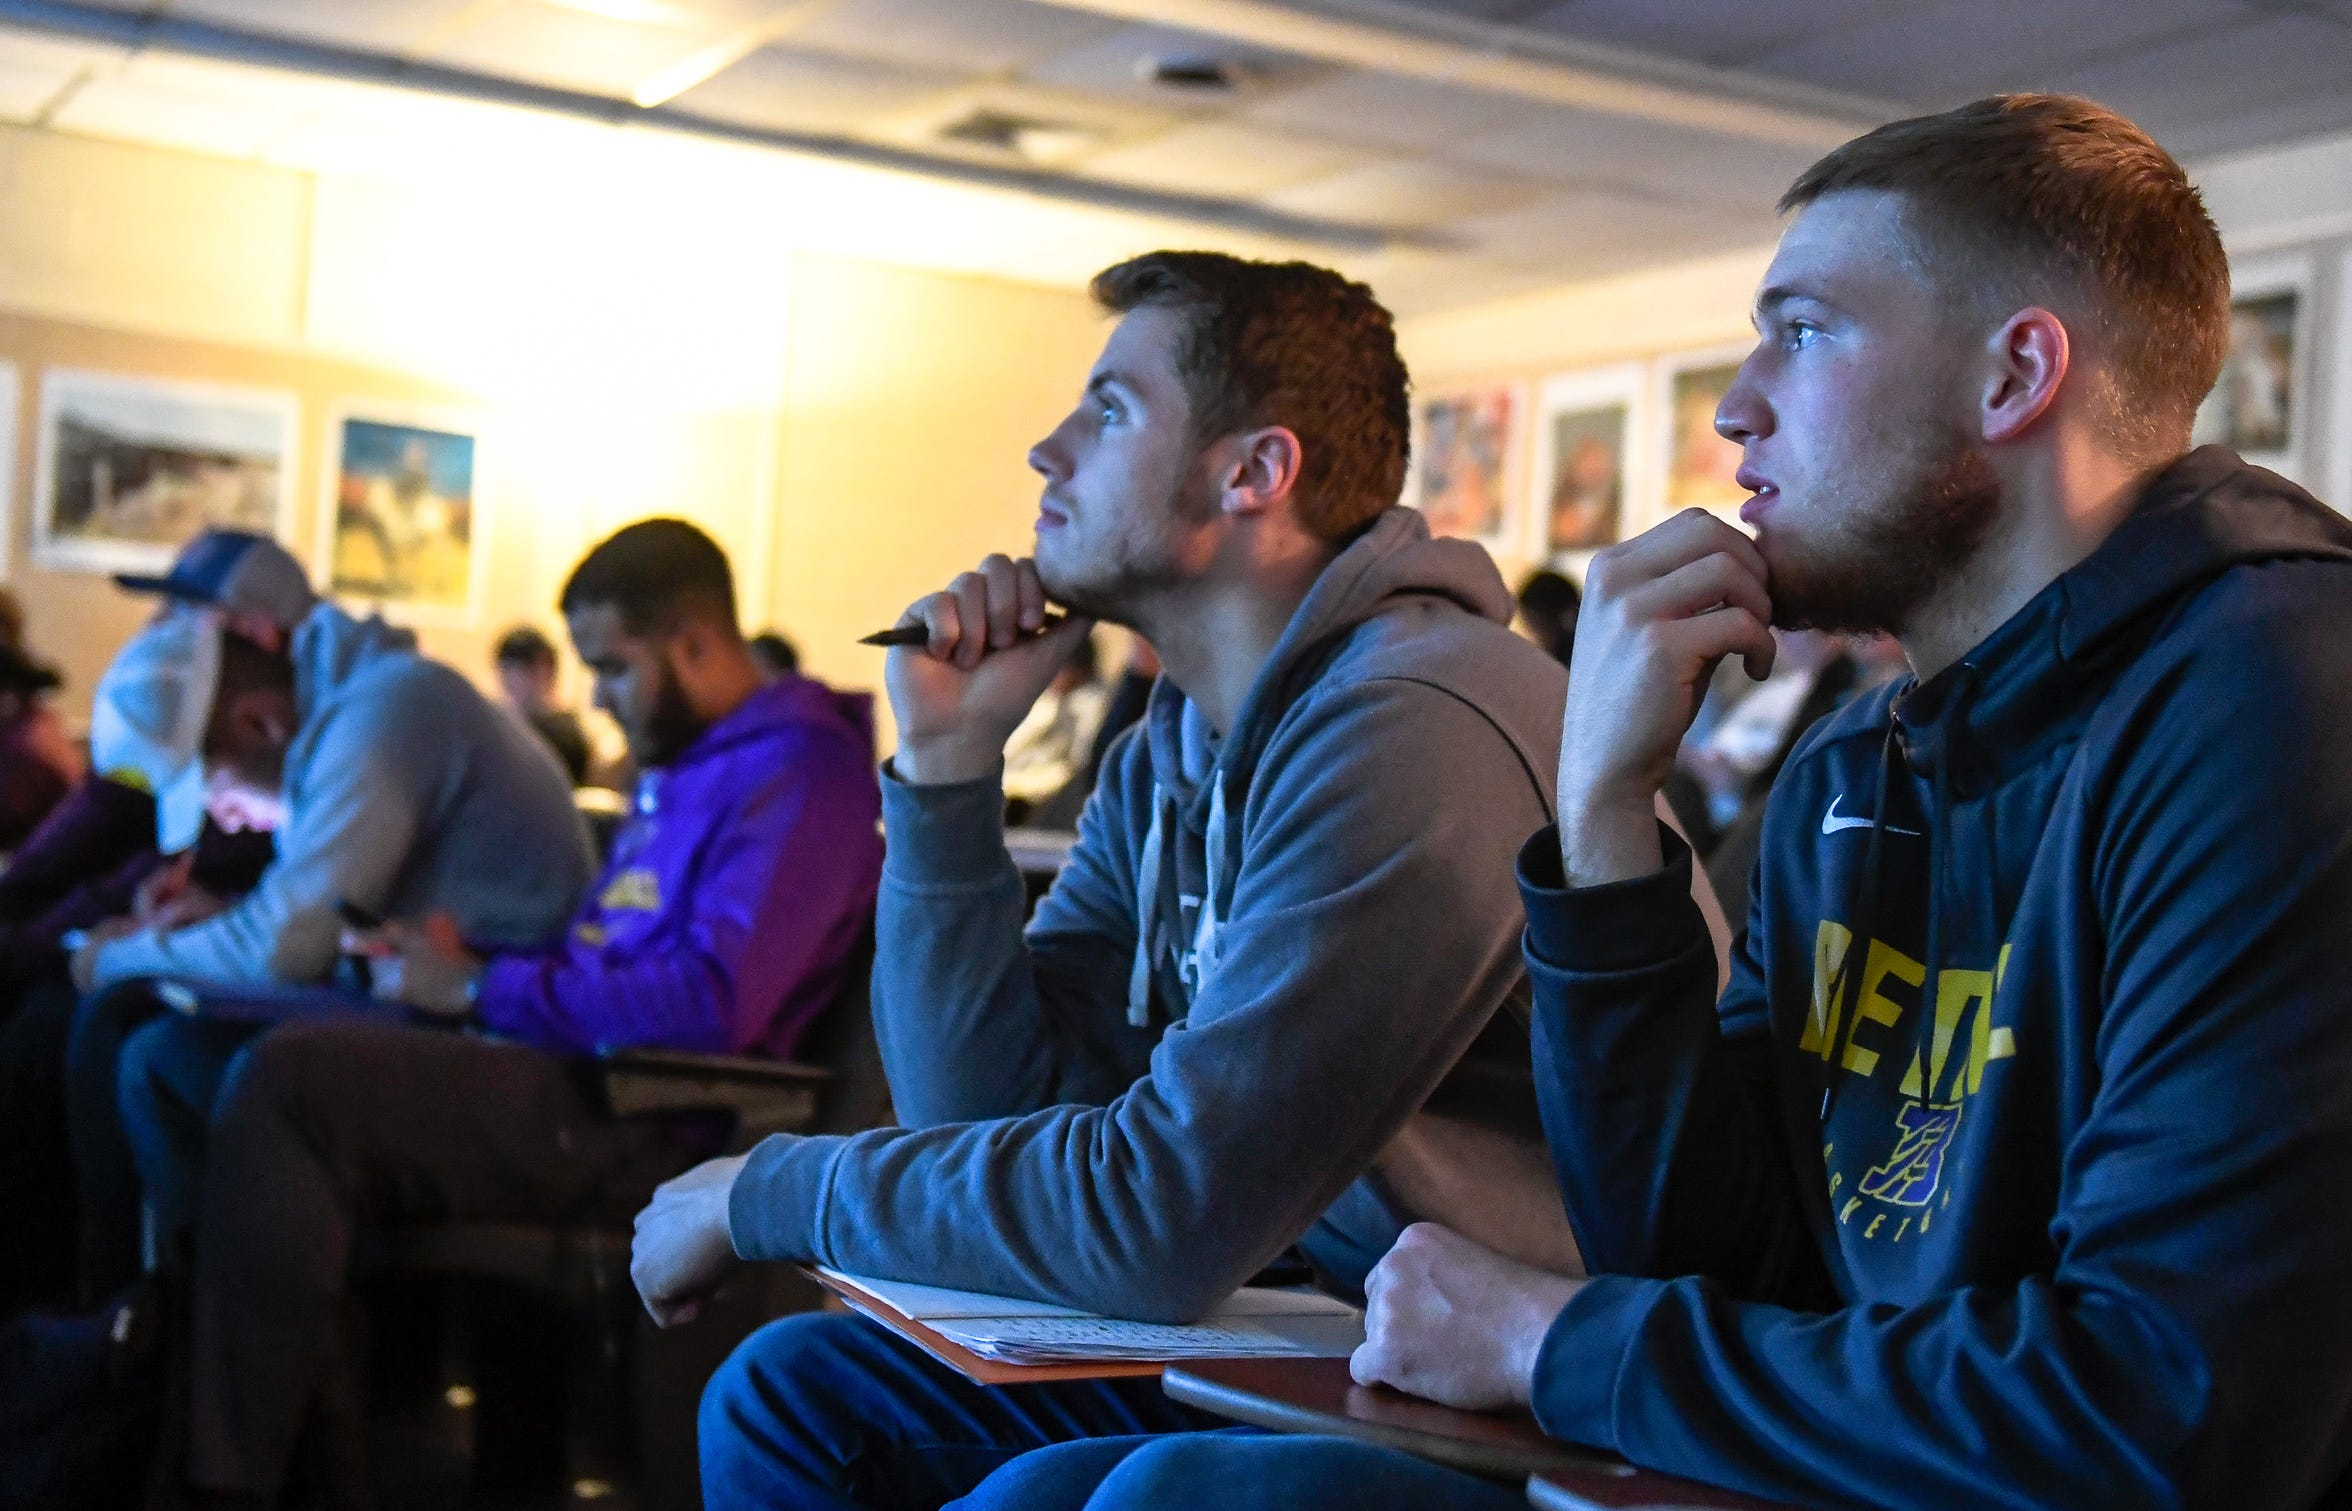 Cayden Edmonson, right, along with teammate Jake Rose concentrate during a western civilization lecture at Bethel University Thursday afternoon, November 14, 2019.